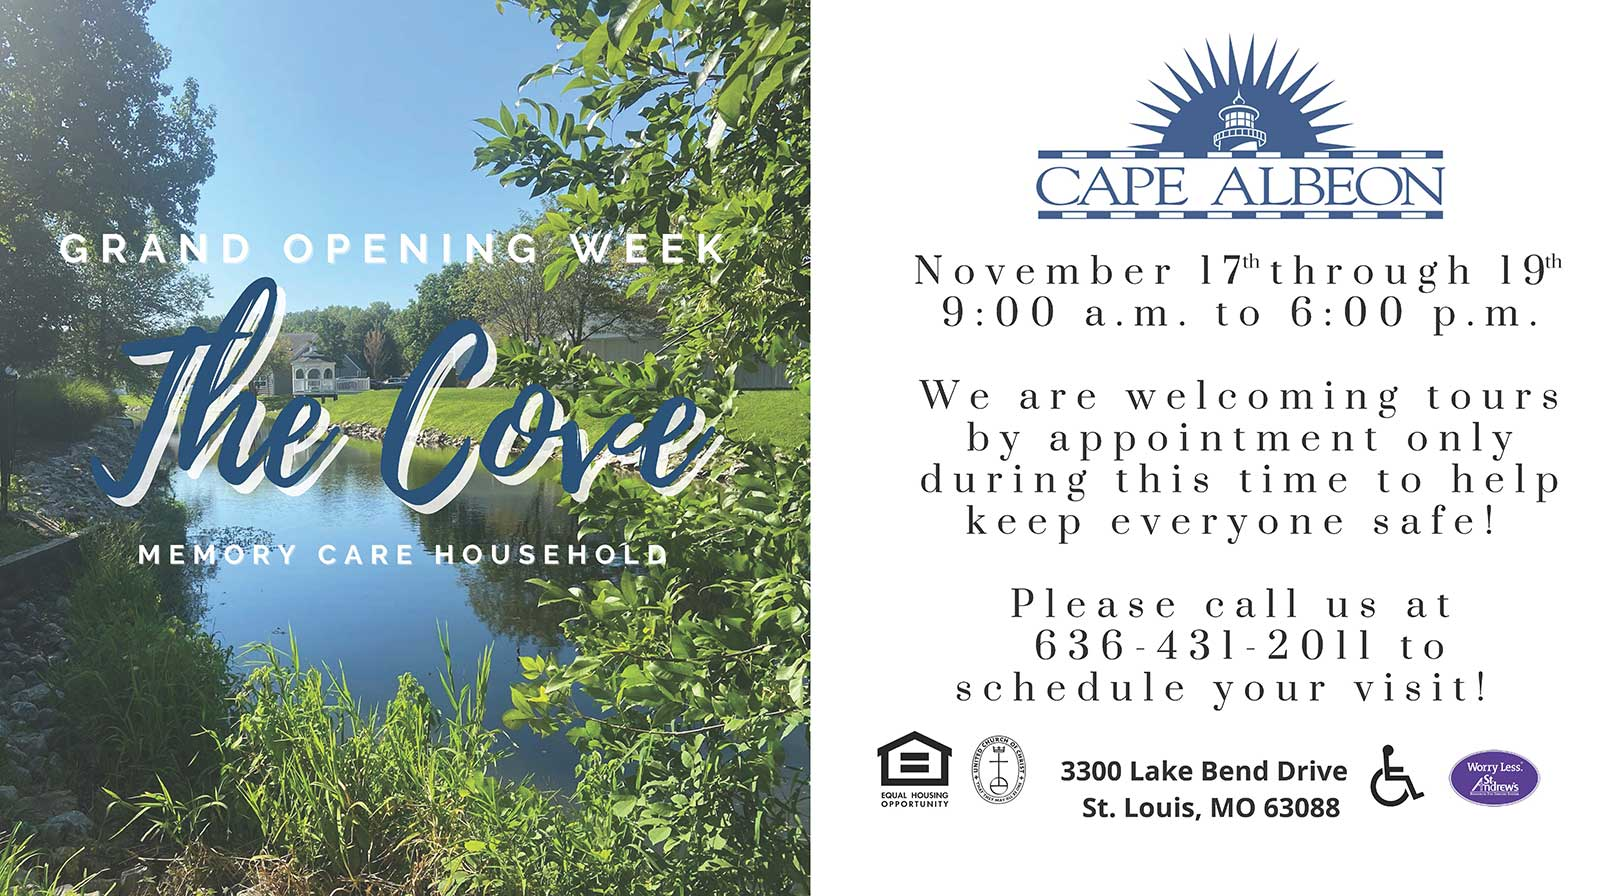 Cape Albeon hosts Grand Opening Week - The Cove Memory Care Household St. Louis